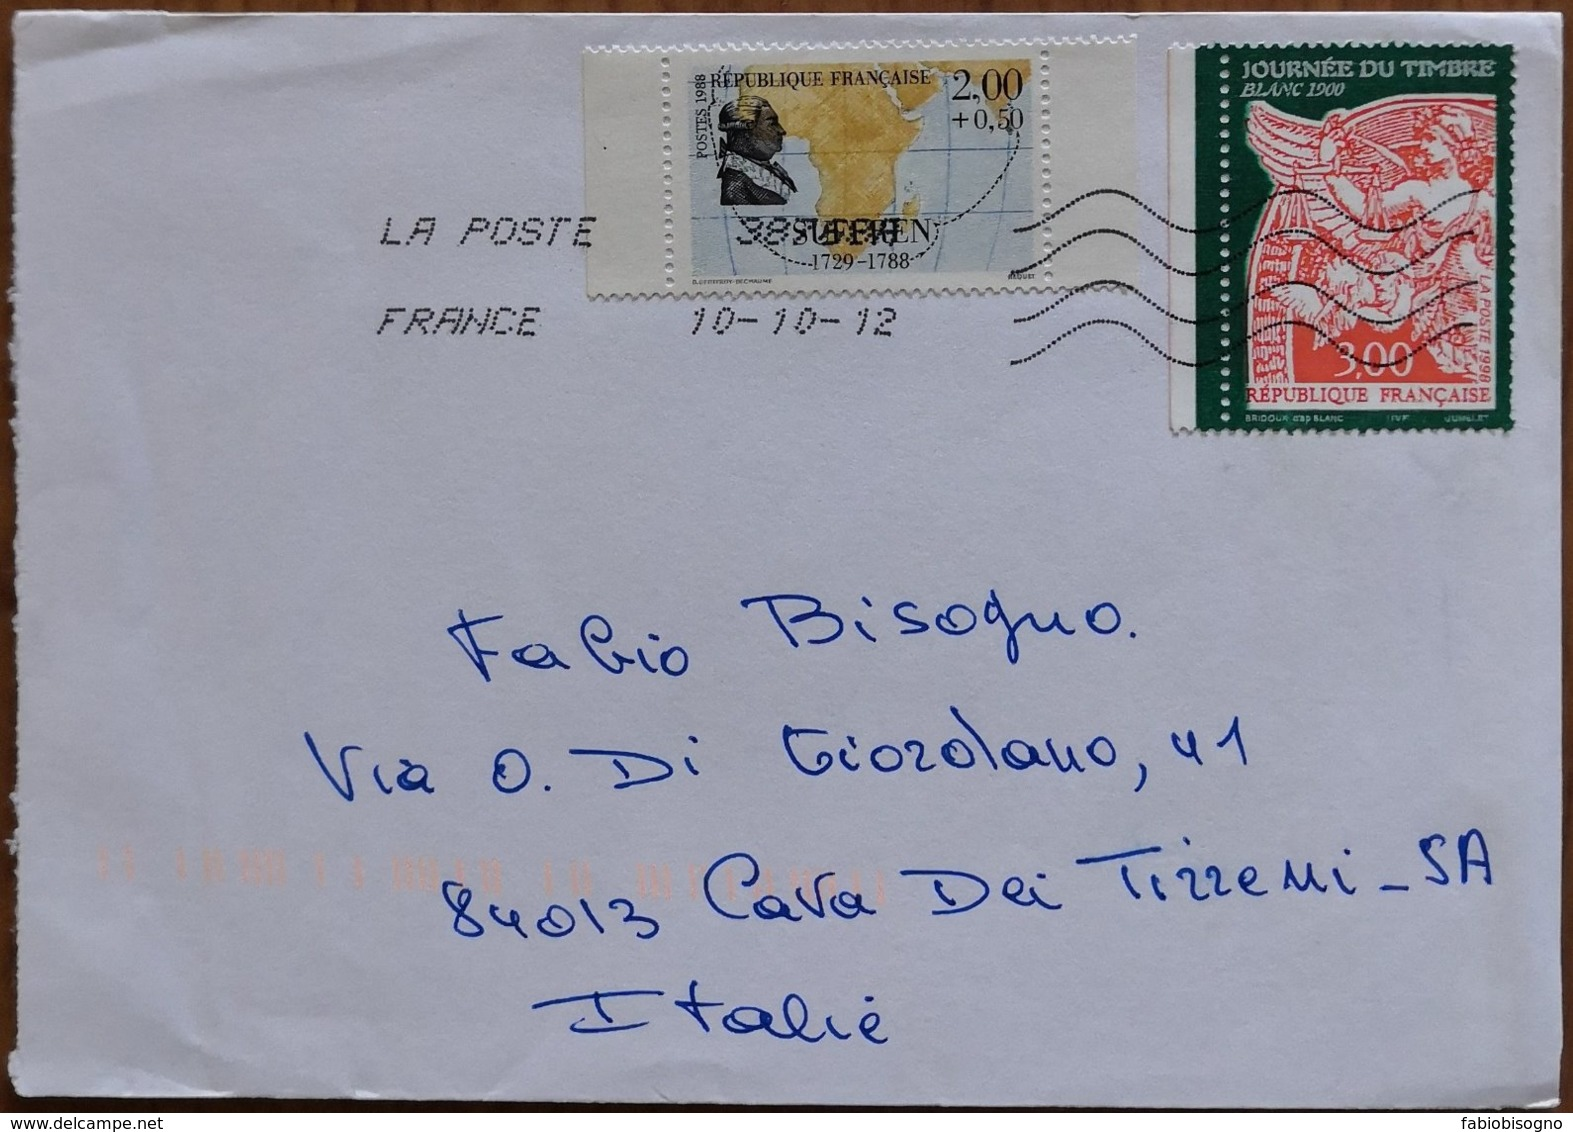 2012 France - Suffren 2.00+0.50 Journee Du Timbre 3.00 - Used Stamps On Cover To Italy - Frankrijk